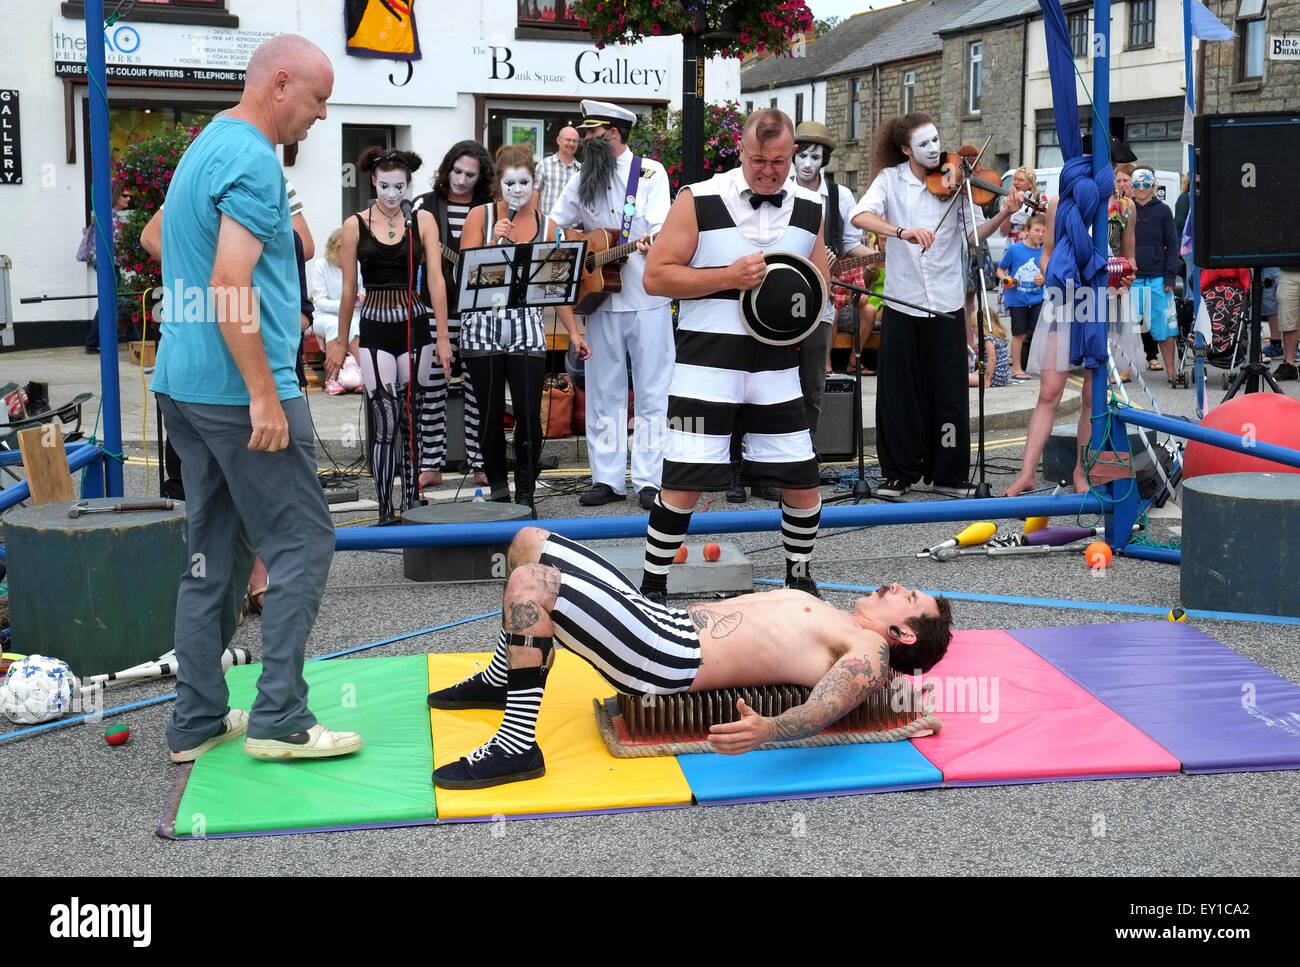 A traditional fairground strongman laying on a bed of nails during a street performance by the '  Swamp Circus - Stock Image